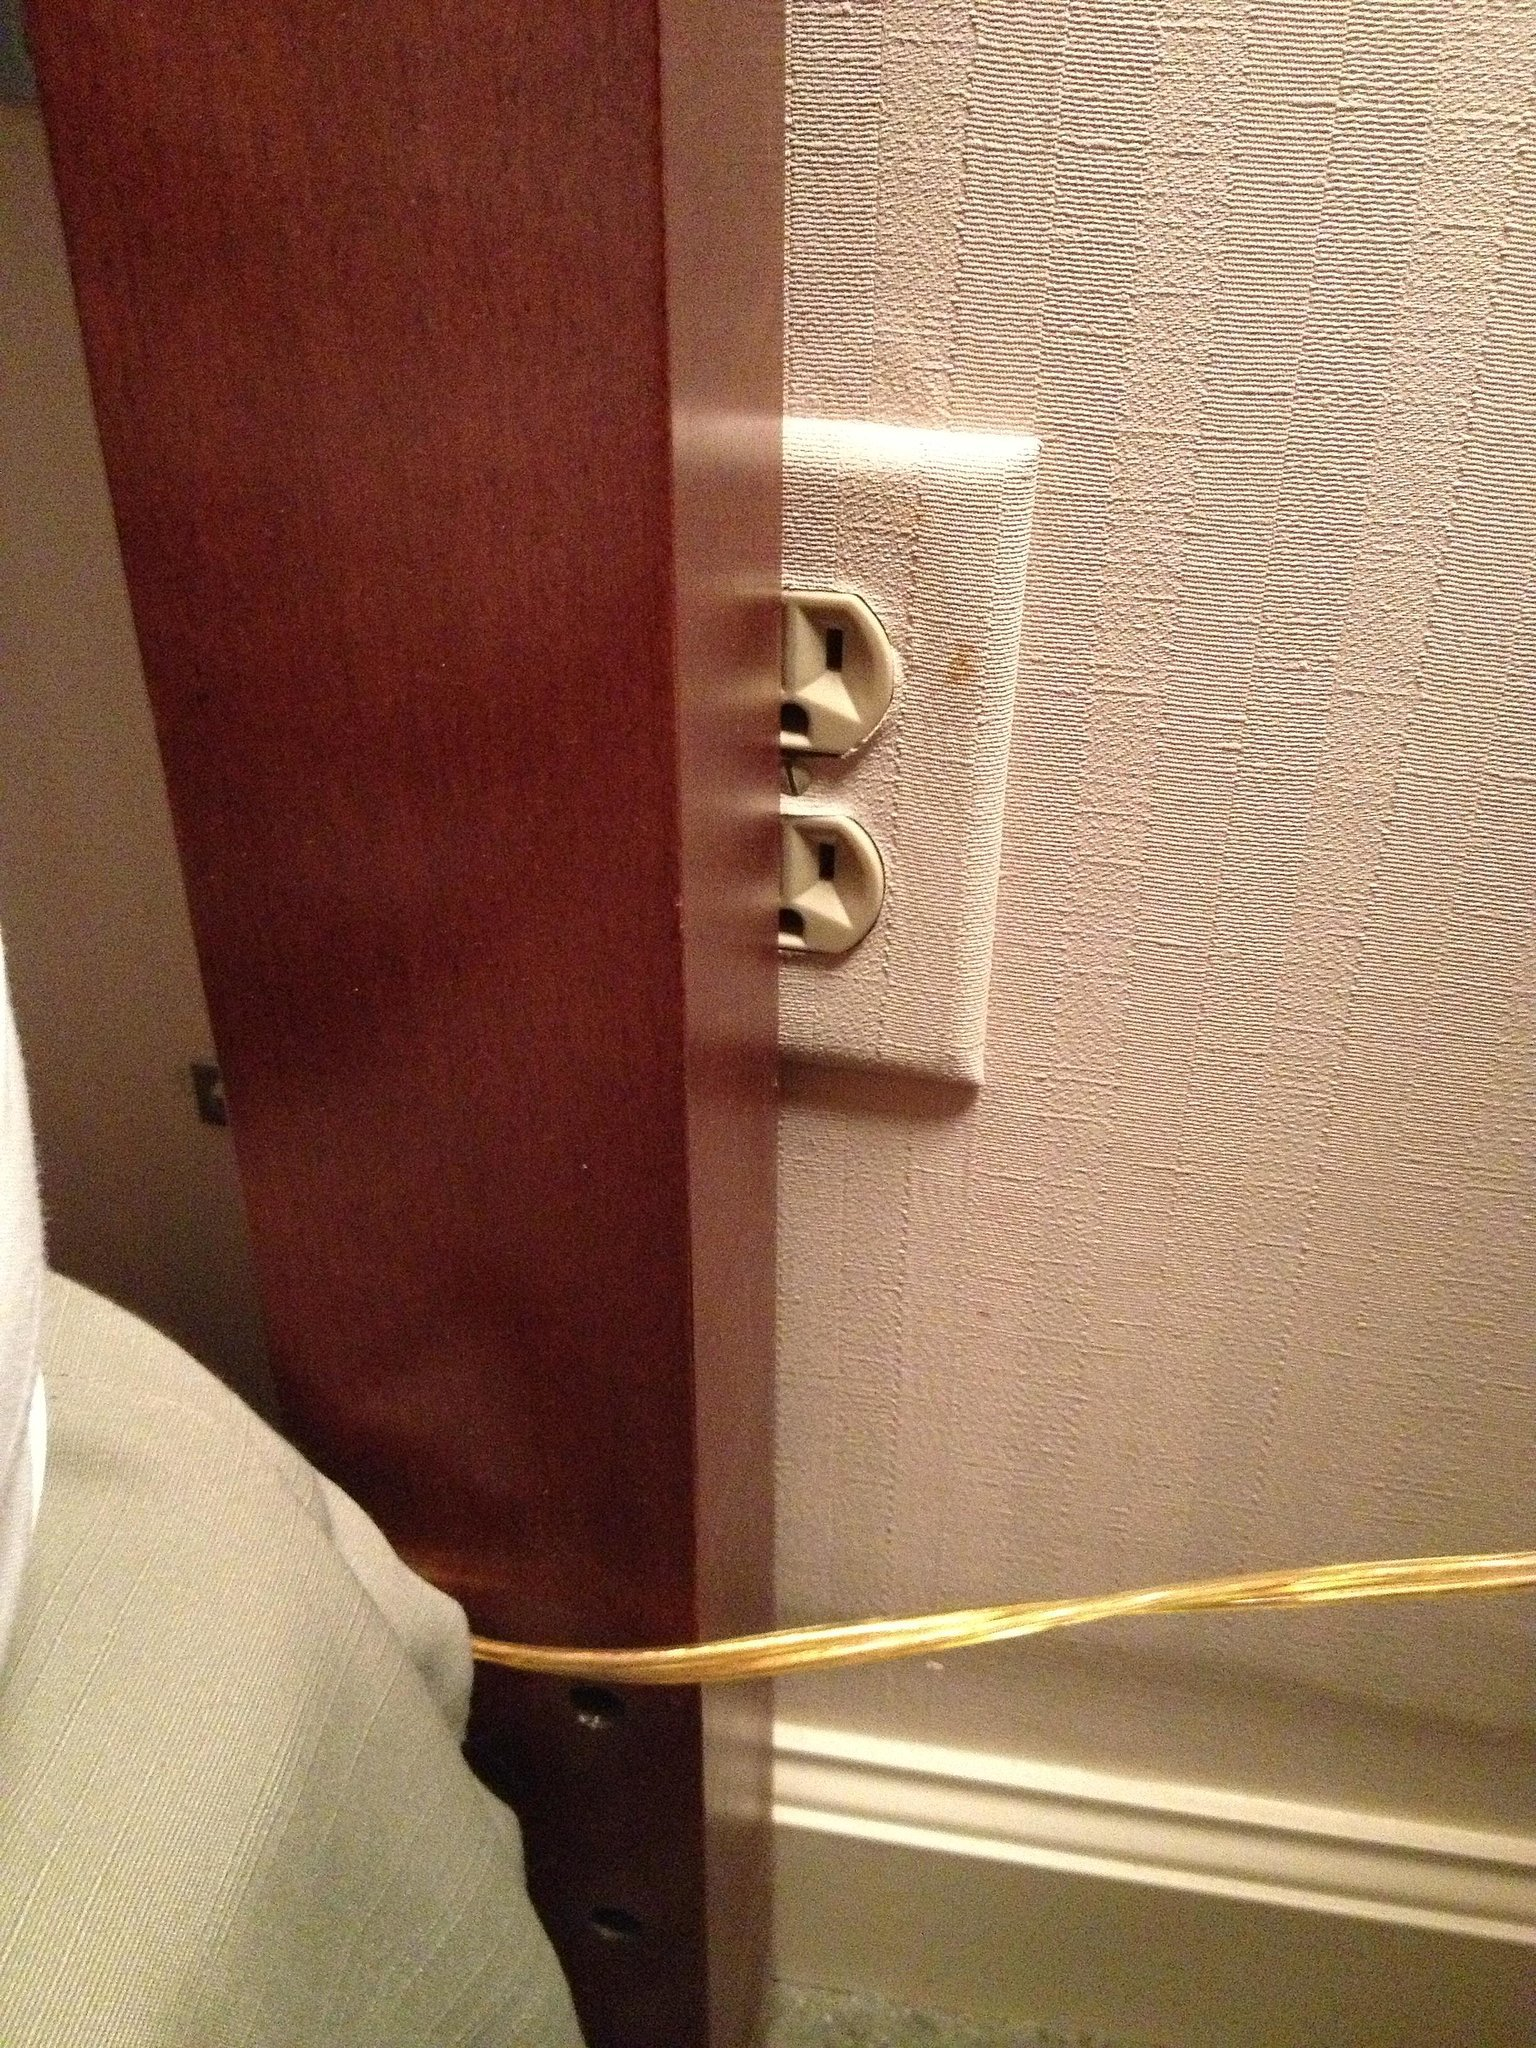 When the Sockets Are Blocked in a Hotel Room